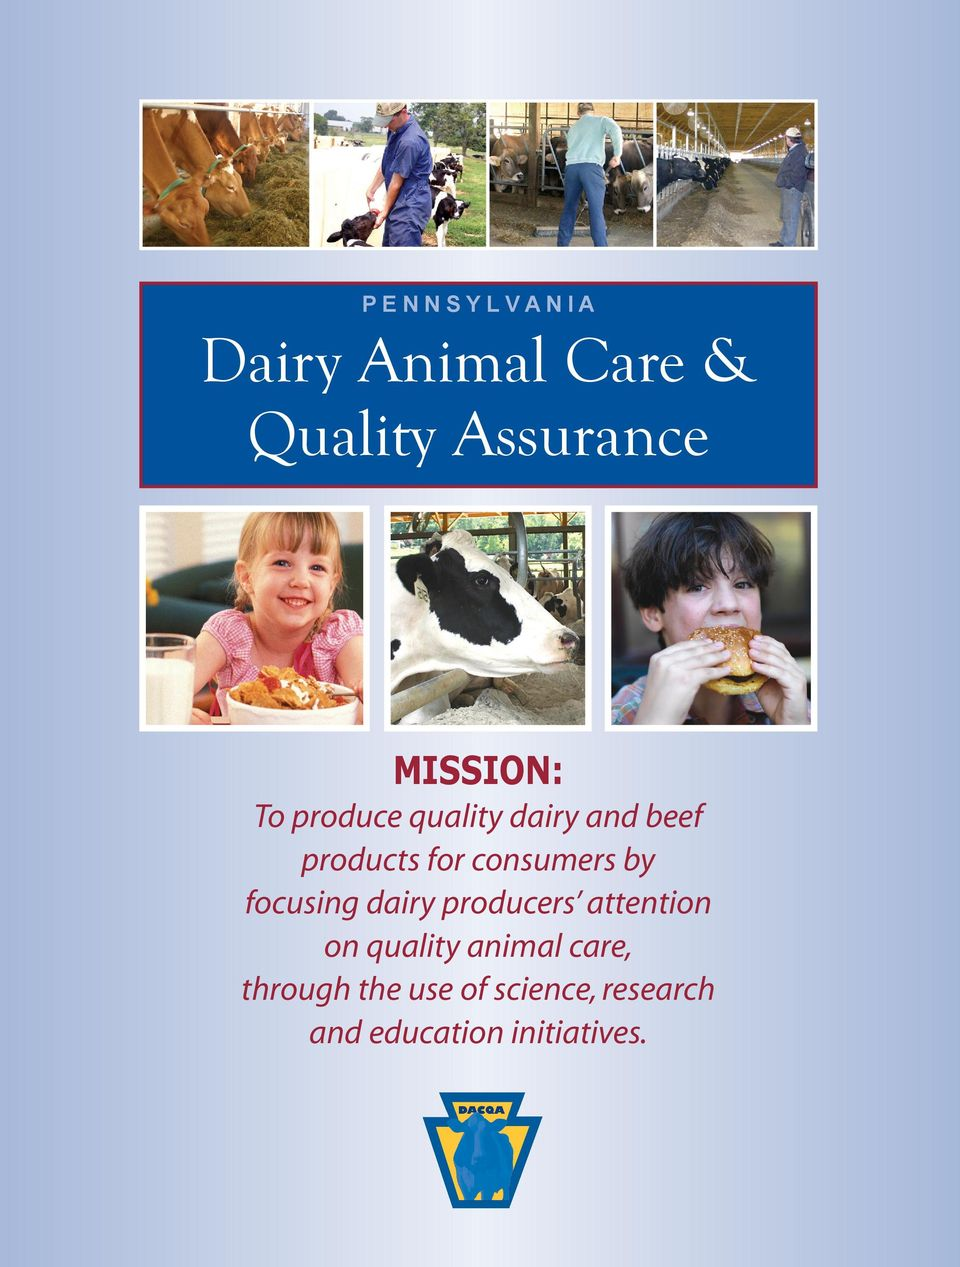 focusing dairy producers attention on quality animal care,